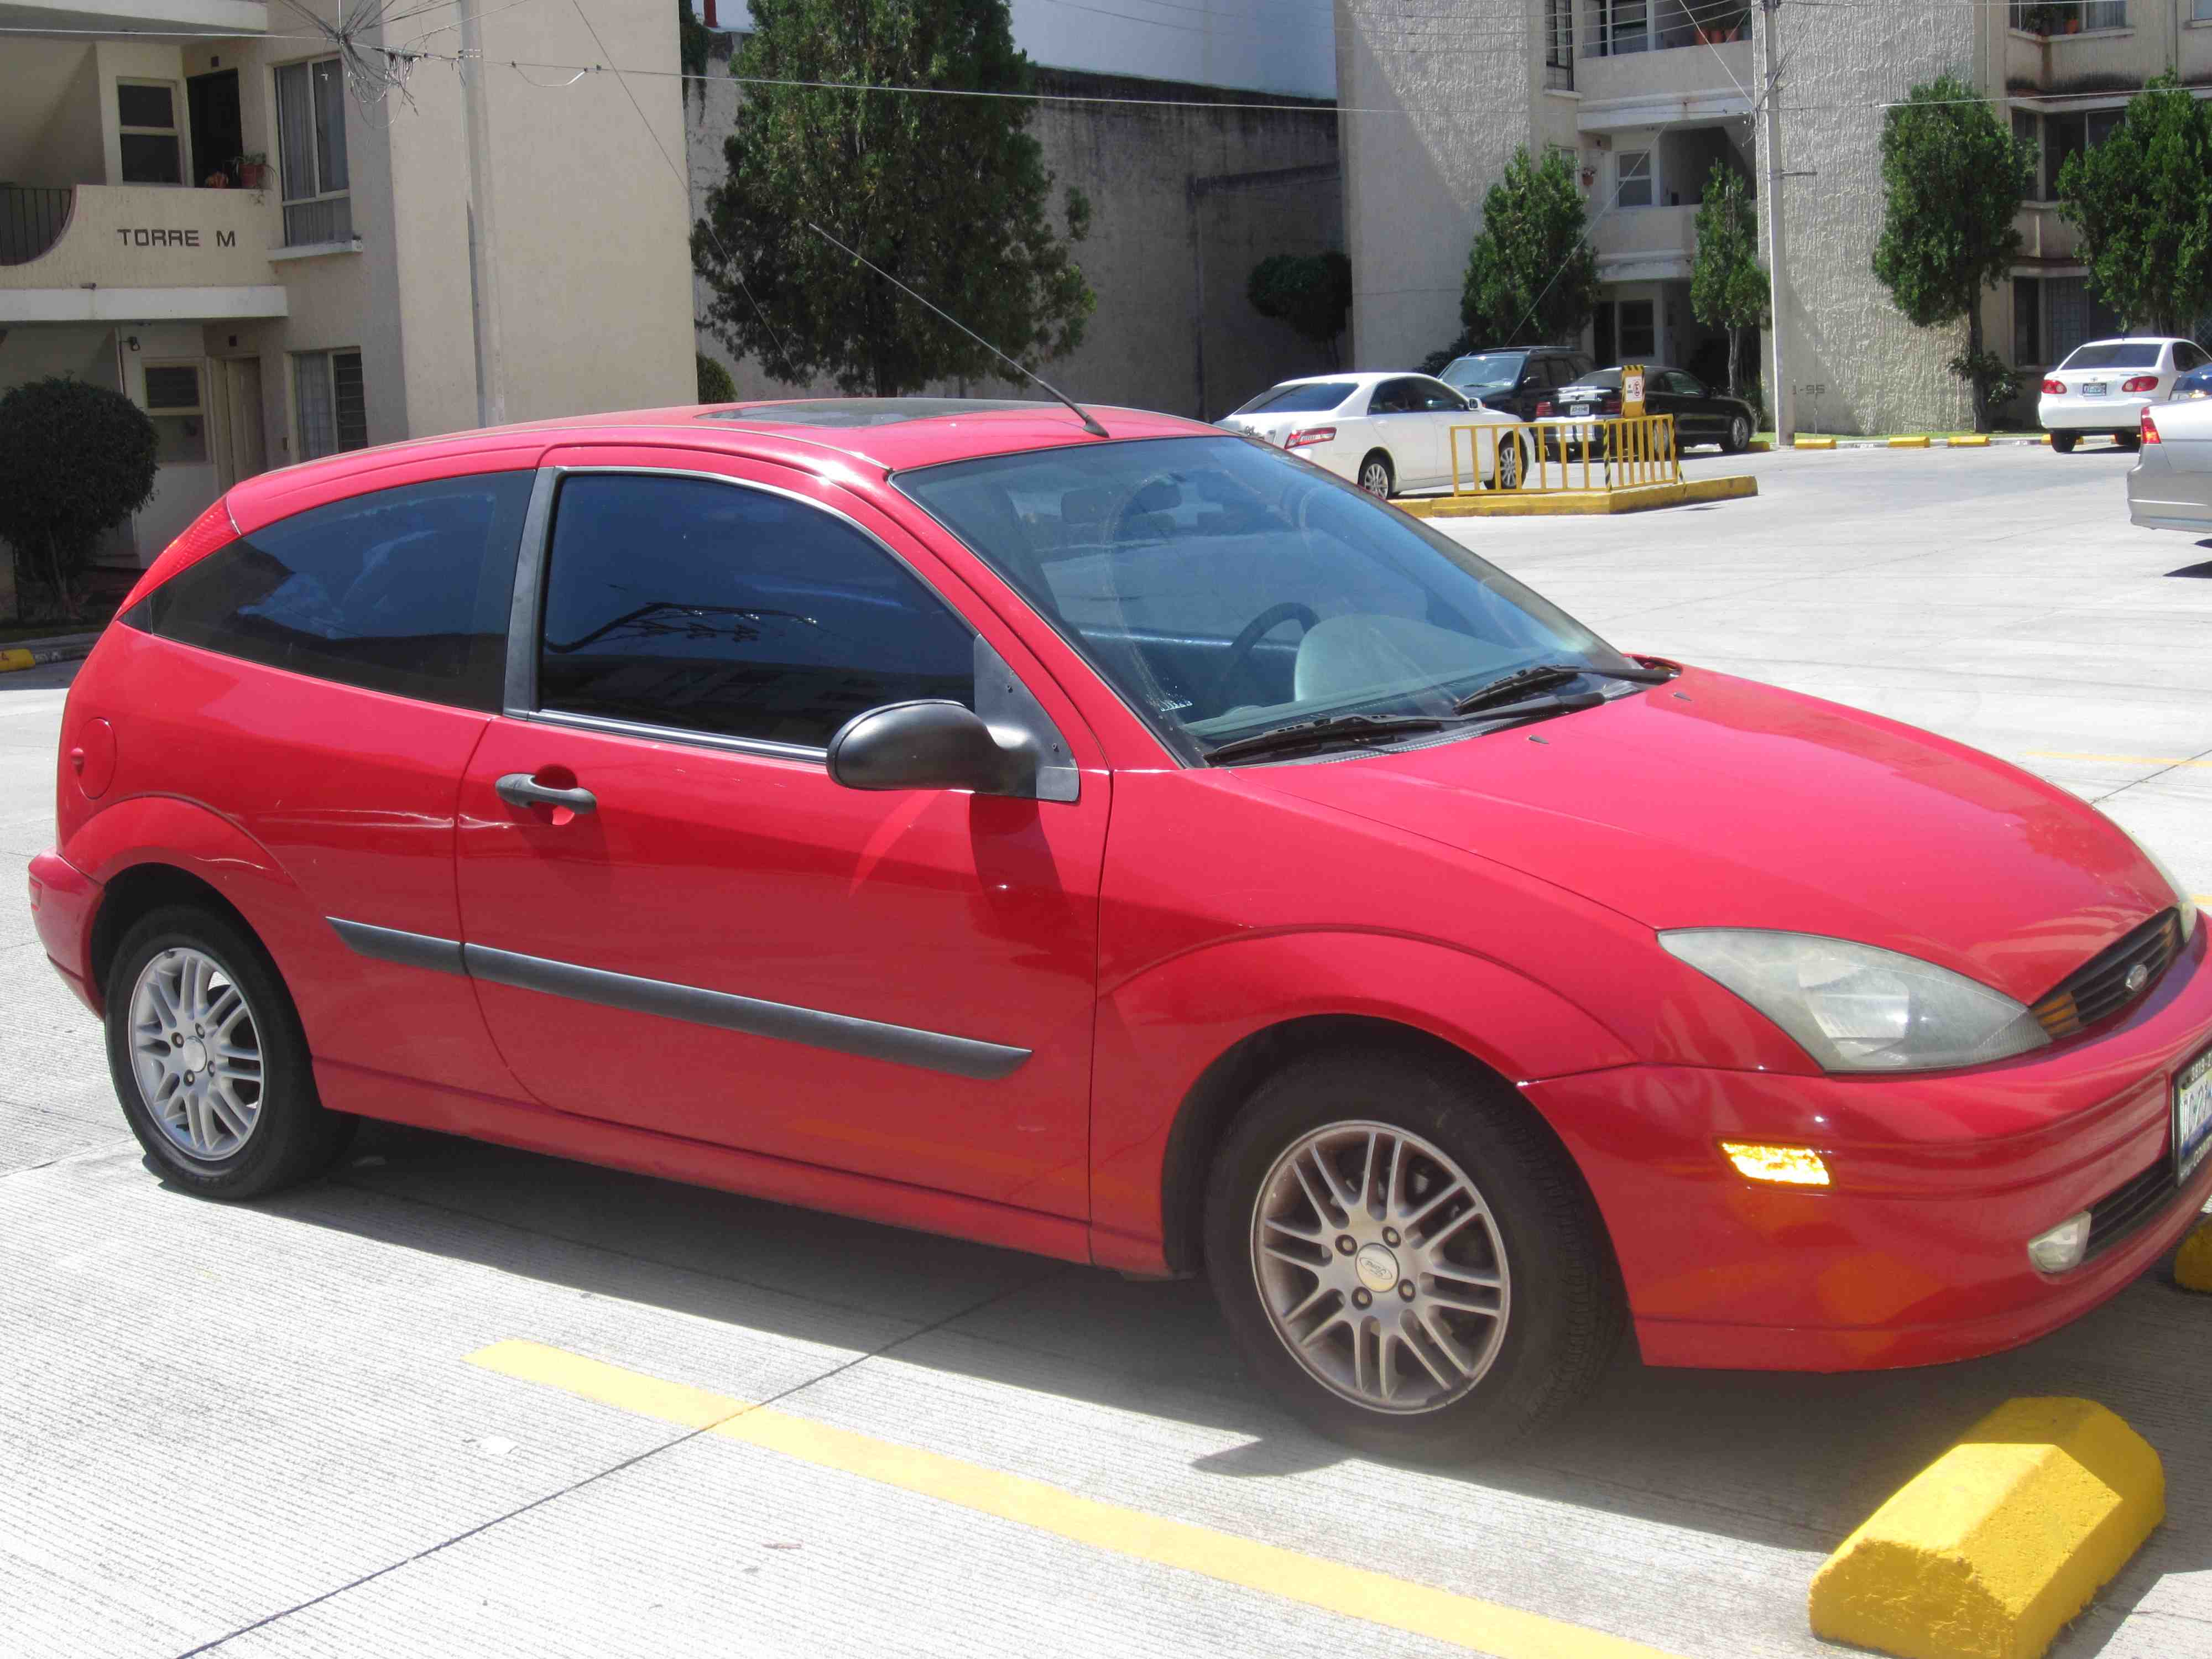 Ford focus 2003 photo - 4